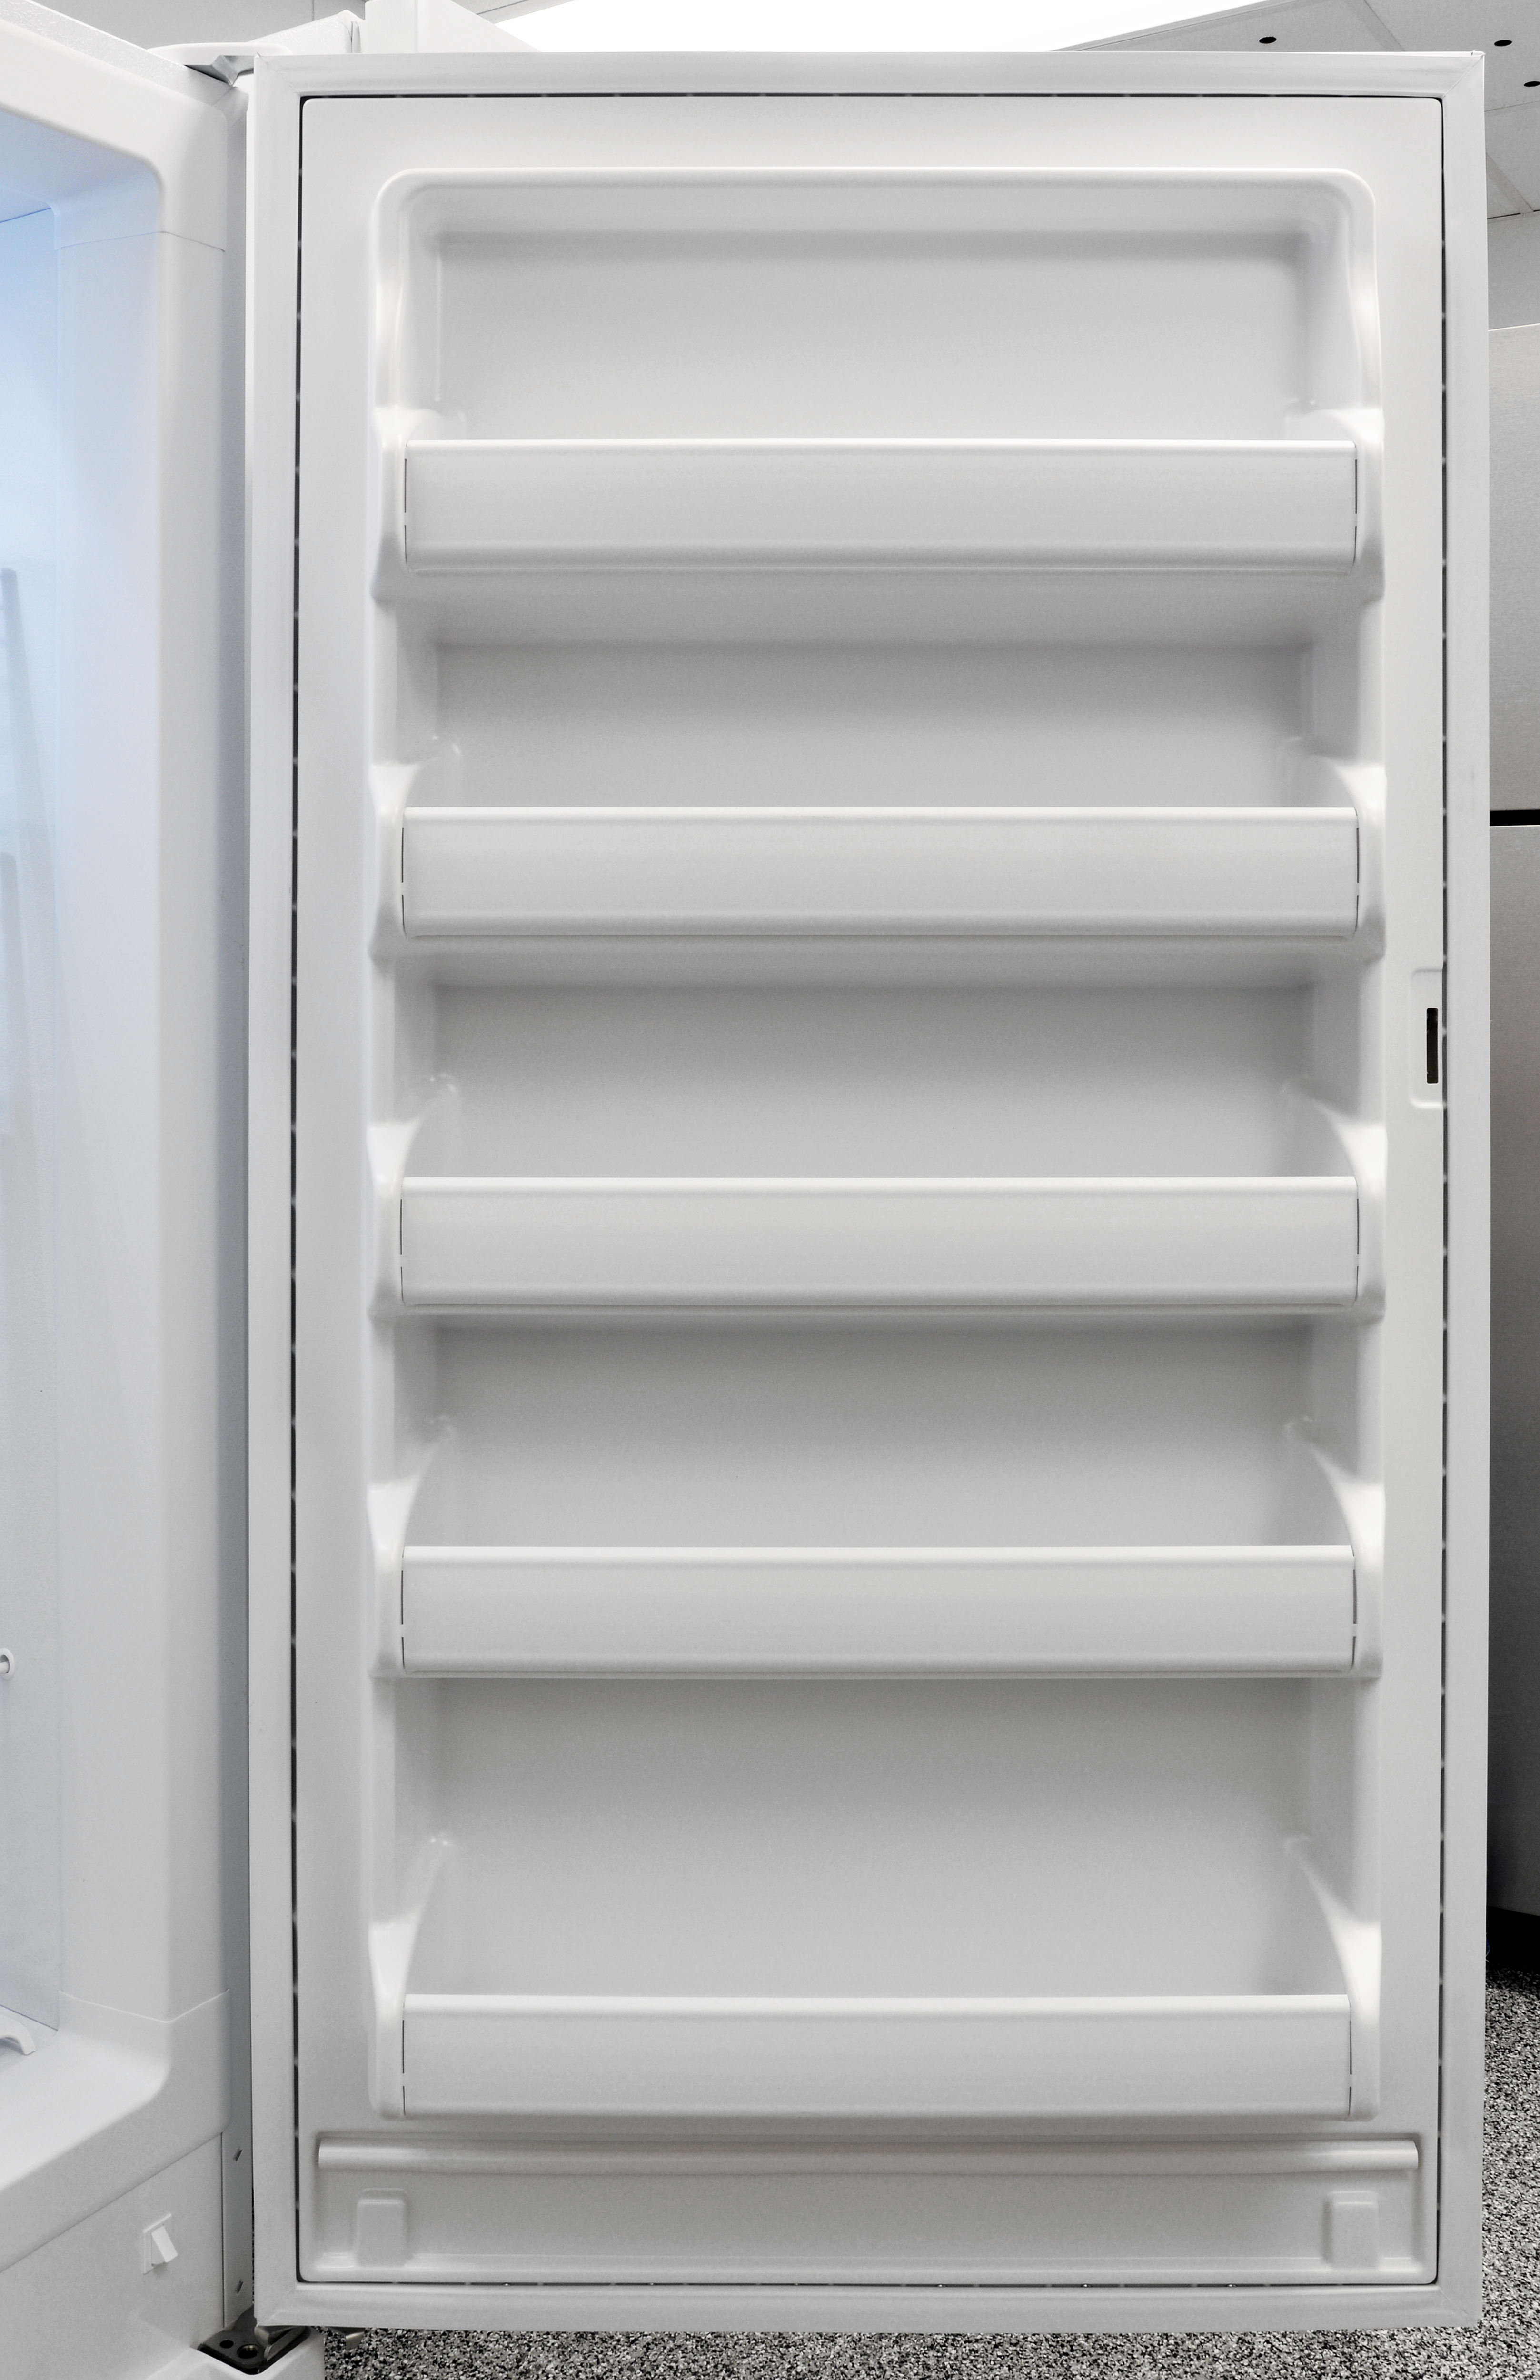 The Frigidaire FFFH17F2QW's door has even more shelves than the main section, but none of them move.